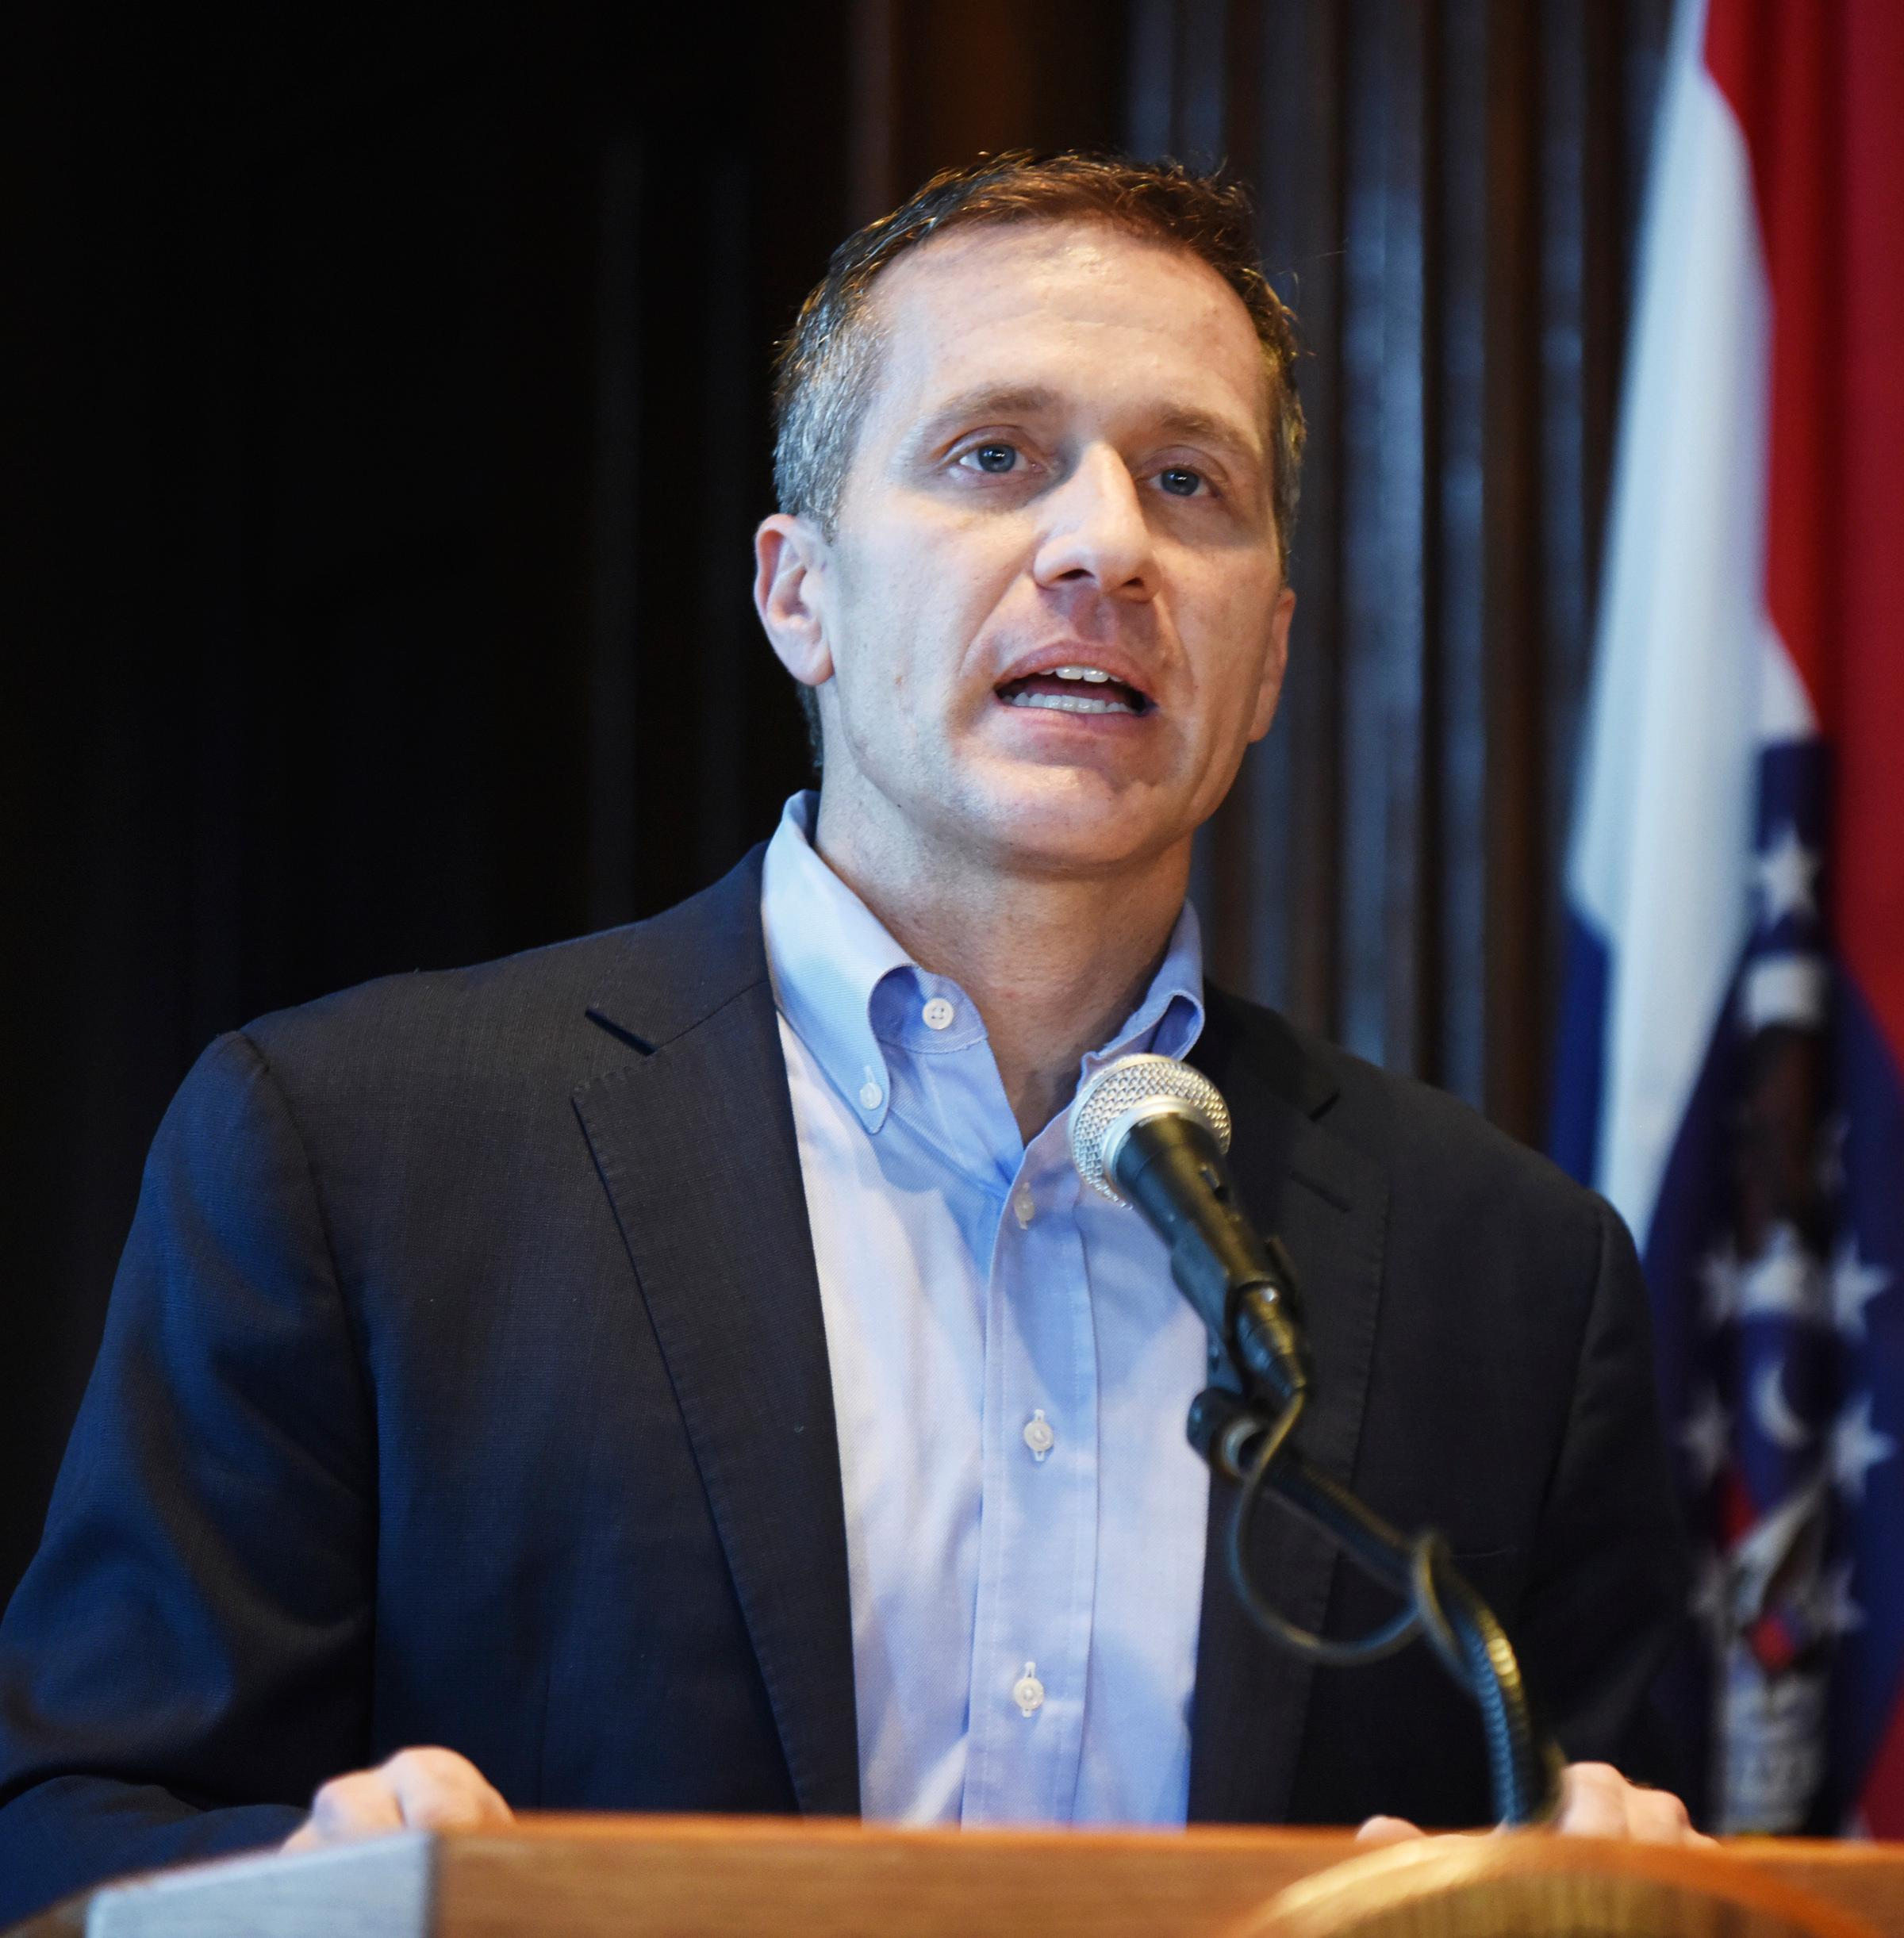 Missouri Gov. Eric Greitens speaks at a news conference about allegations related to his extramarital affair with his hairdresser, in Jefferson City, Mo., Wednesday, April 11, 2018. Greitens initiated a physically aggressive unwanted sexual encounter with his hairdresser and threatened to distribute a partially nude photo of her if she spoke about it, according to testimony from the woman released Wednesday by a House investigatory committee. (Julie Smith/The Jefferson City News-Tribune via AP)